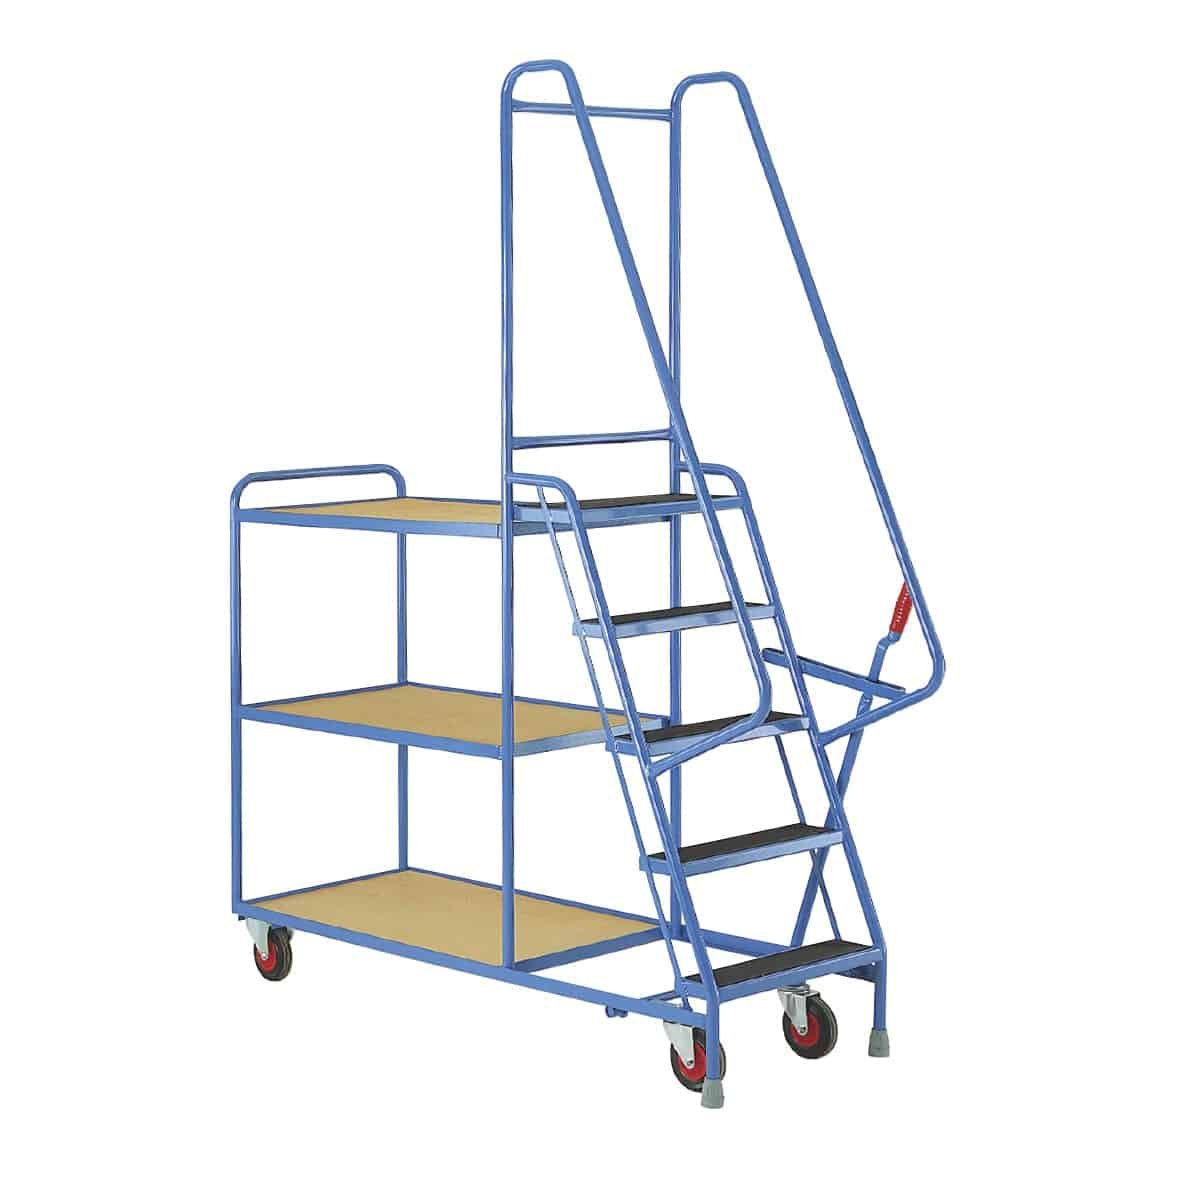 Plywood Shelves 5 Step Tray Trolleys